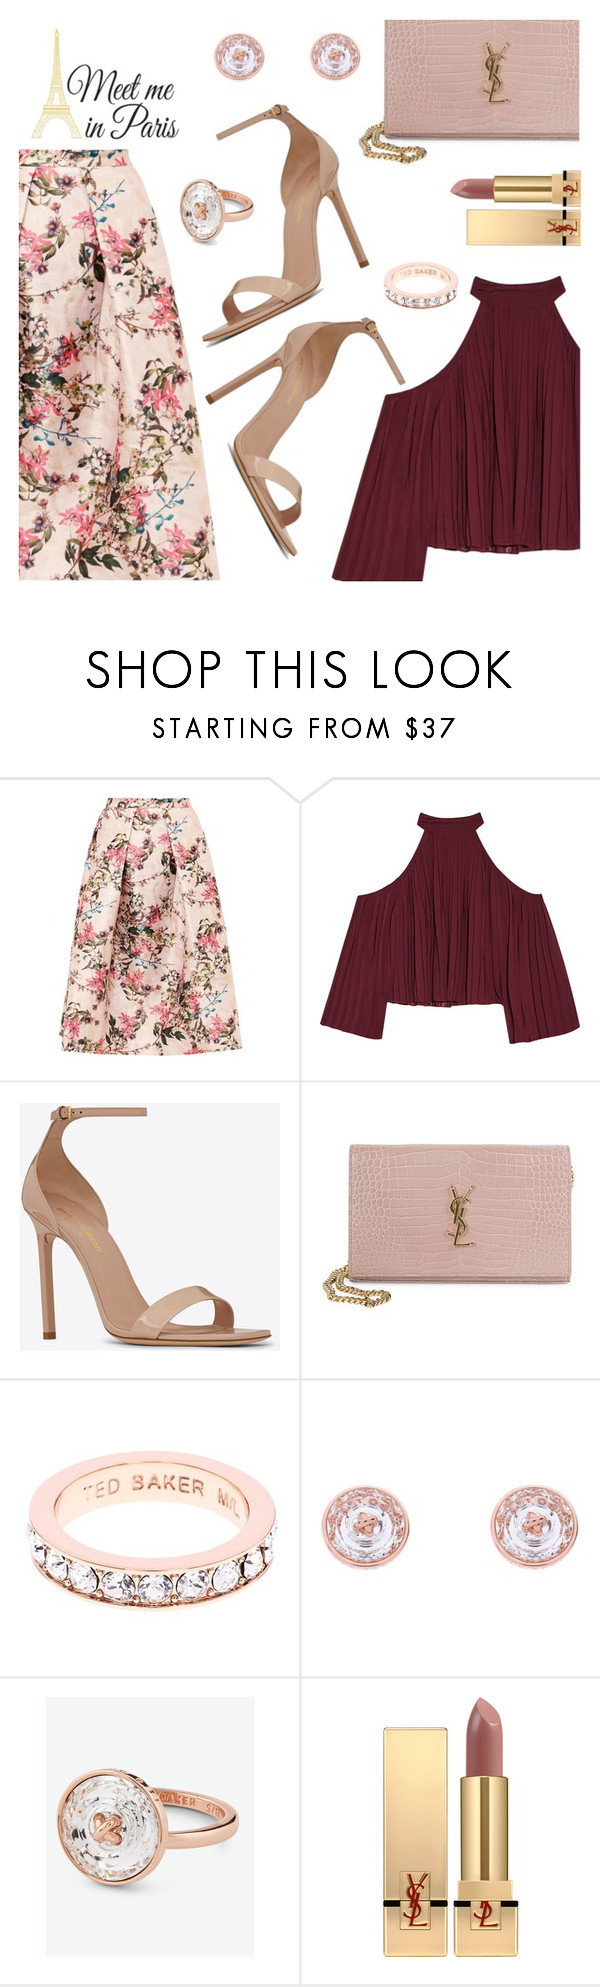 """""""Meet me in Paris"""" by dressedbyrose ❤ liked on Polyvore featuring Ted Baker, W118 by Walter Baker, Yves Saint Laurent, Brewster Home Fashions, chic, paris, ootd and polyvoreeditorial"""